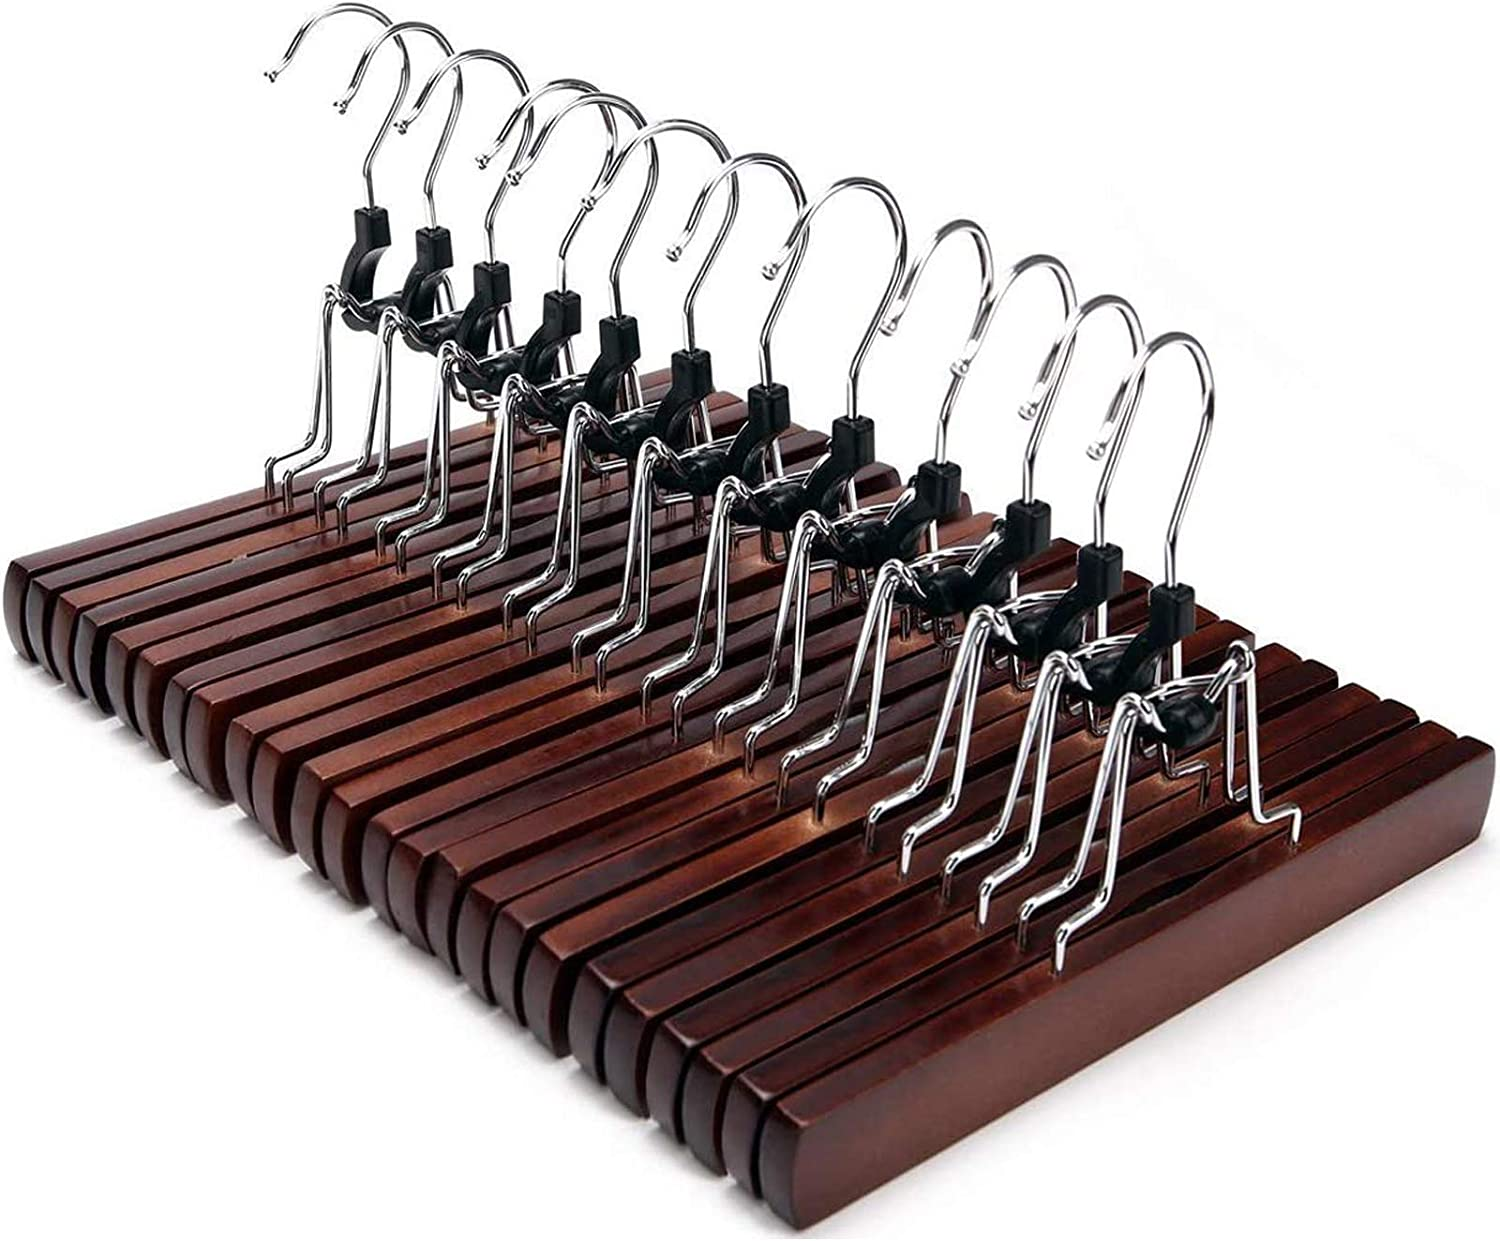 YCLOVE 12 PACK Pant Hangers with Clips Clothes Trousers Jean Skirt Slacks Hangers Boot Clips W//2 360/° Swivel Adujstable Clips Non-Slip Stainless Iron Anti-Rust YCG04S